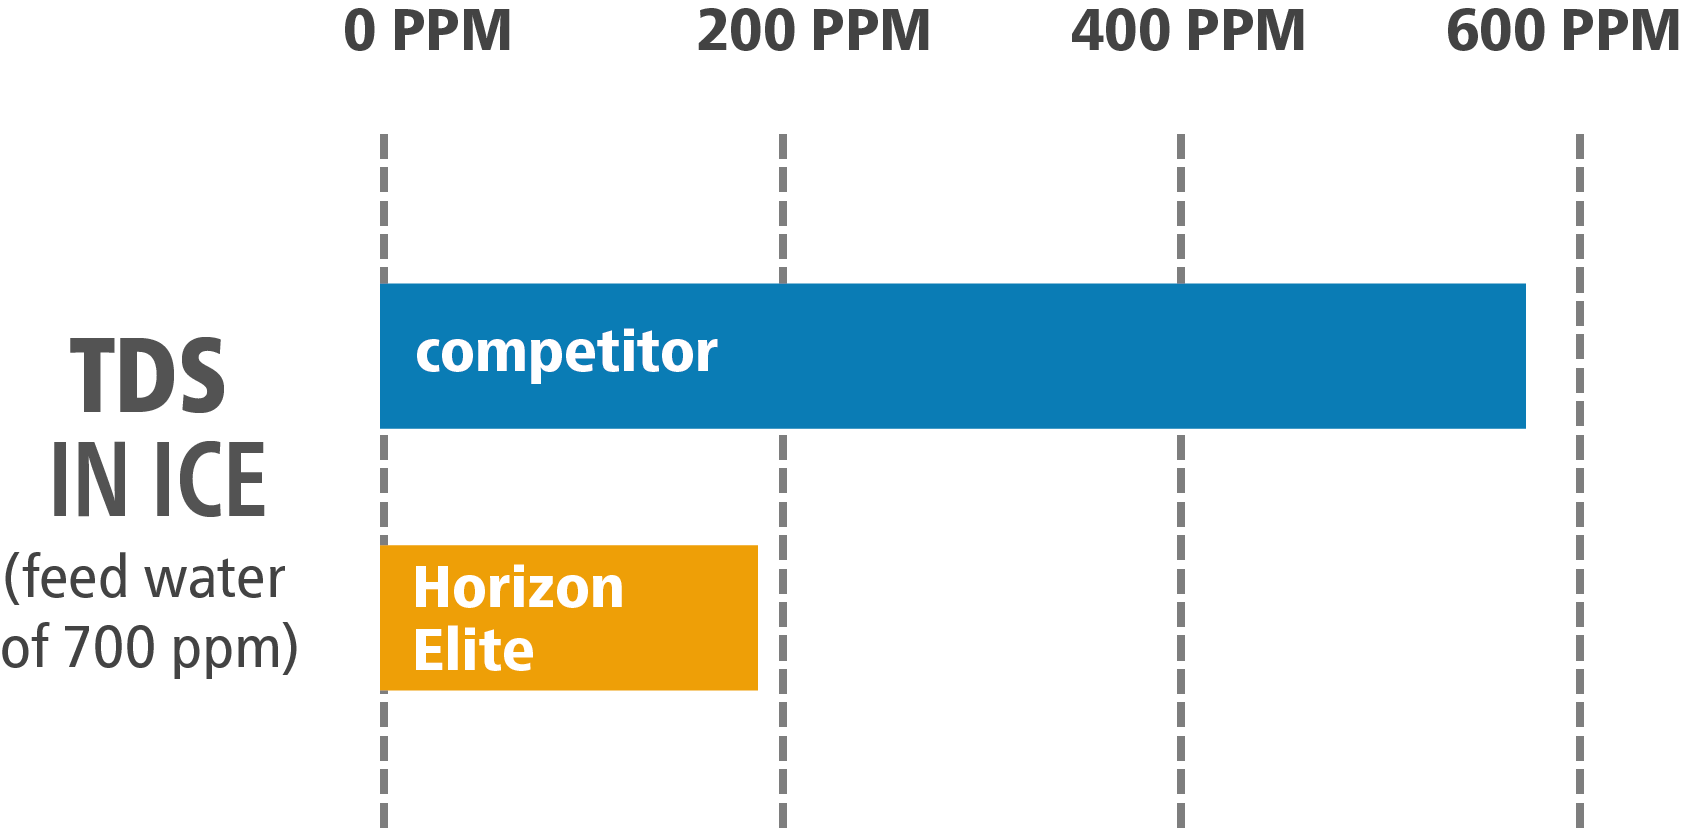 bar chart showing TDS in ice - competitor vs Horizon Elite